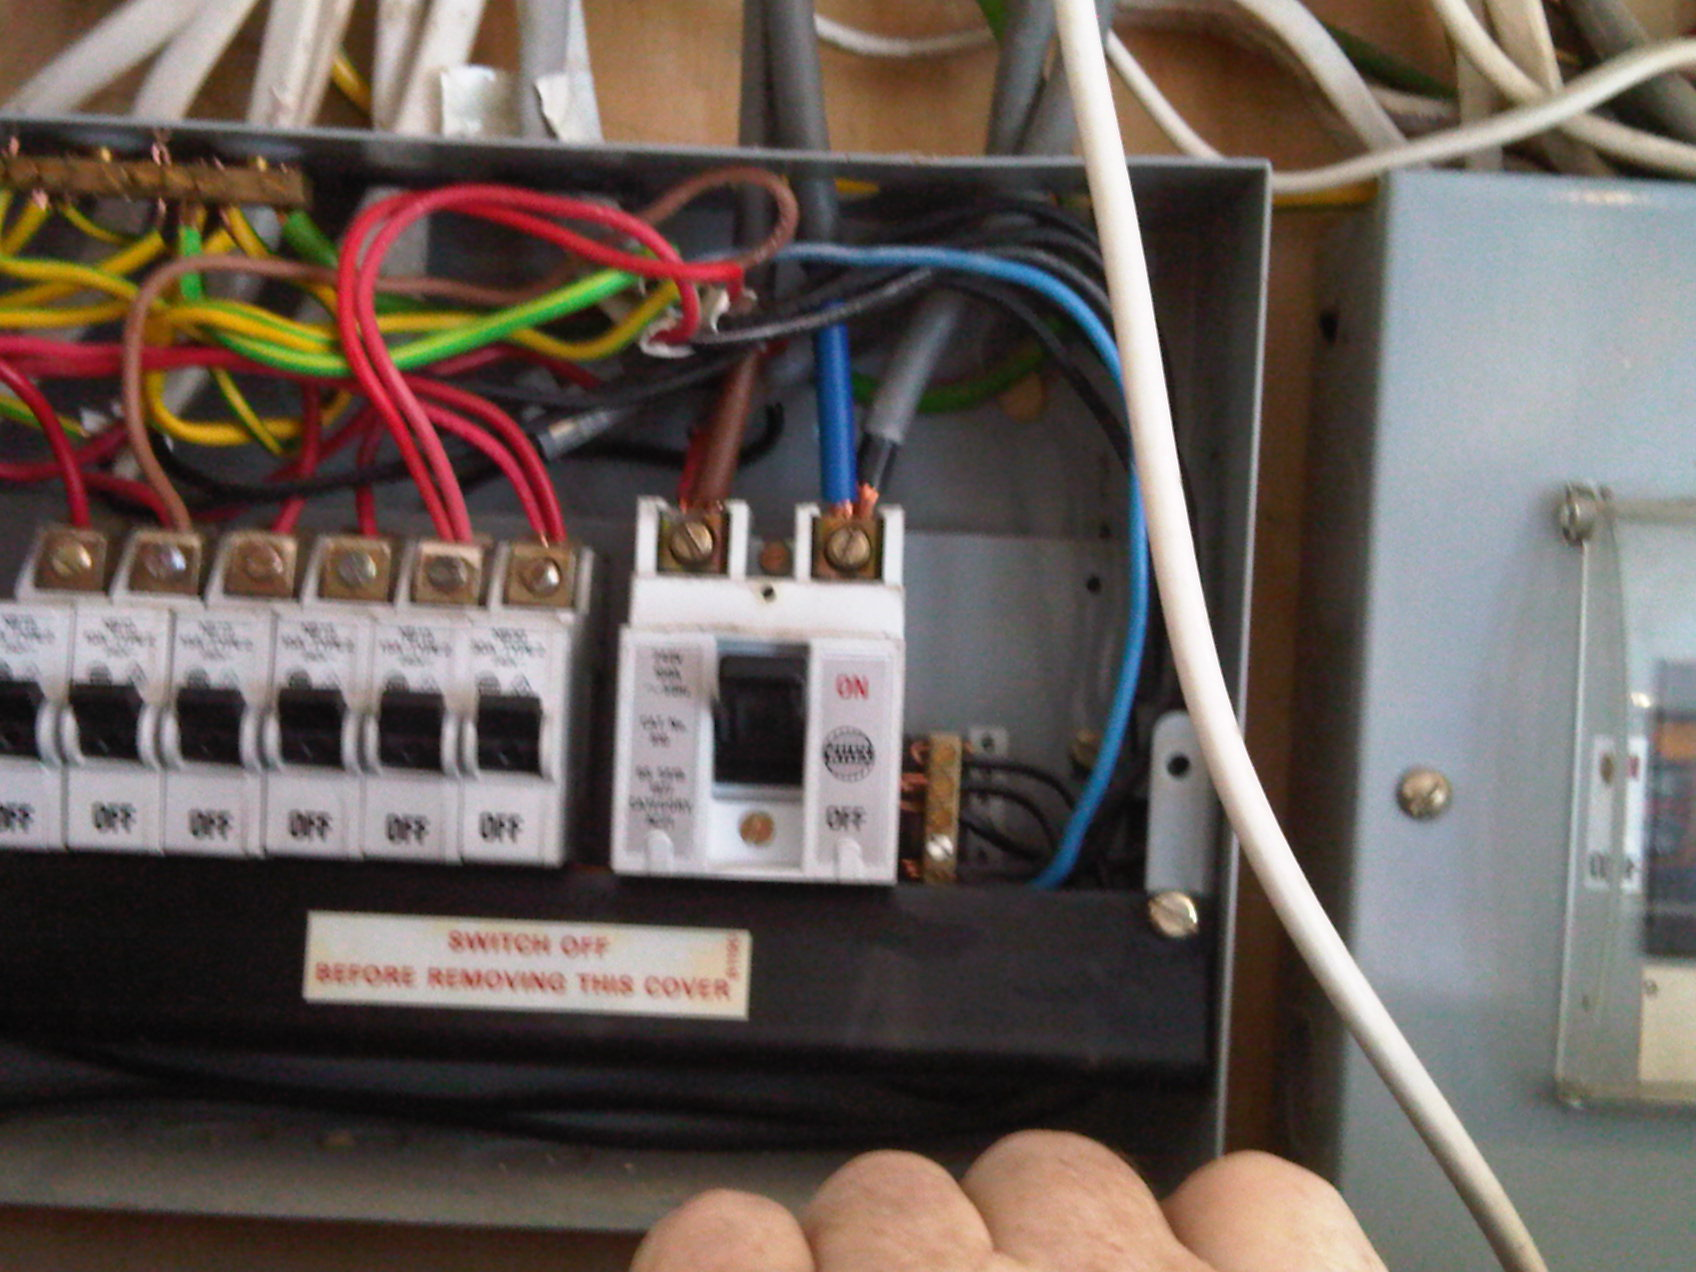 mk repair centre photo gallery the above are actions that we electricians are never allowed to take but sad proof that some of them obviously do the proteus fusebox wiring is bad as